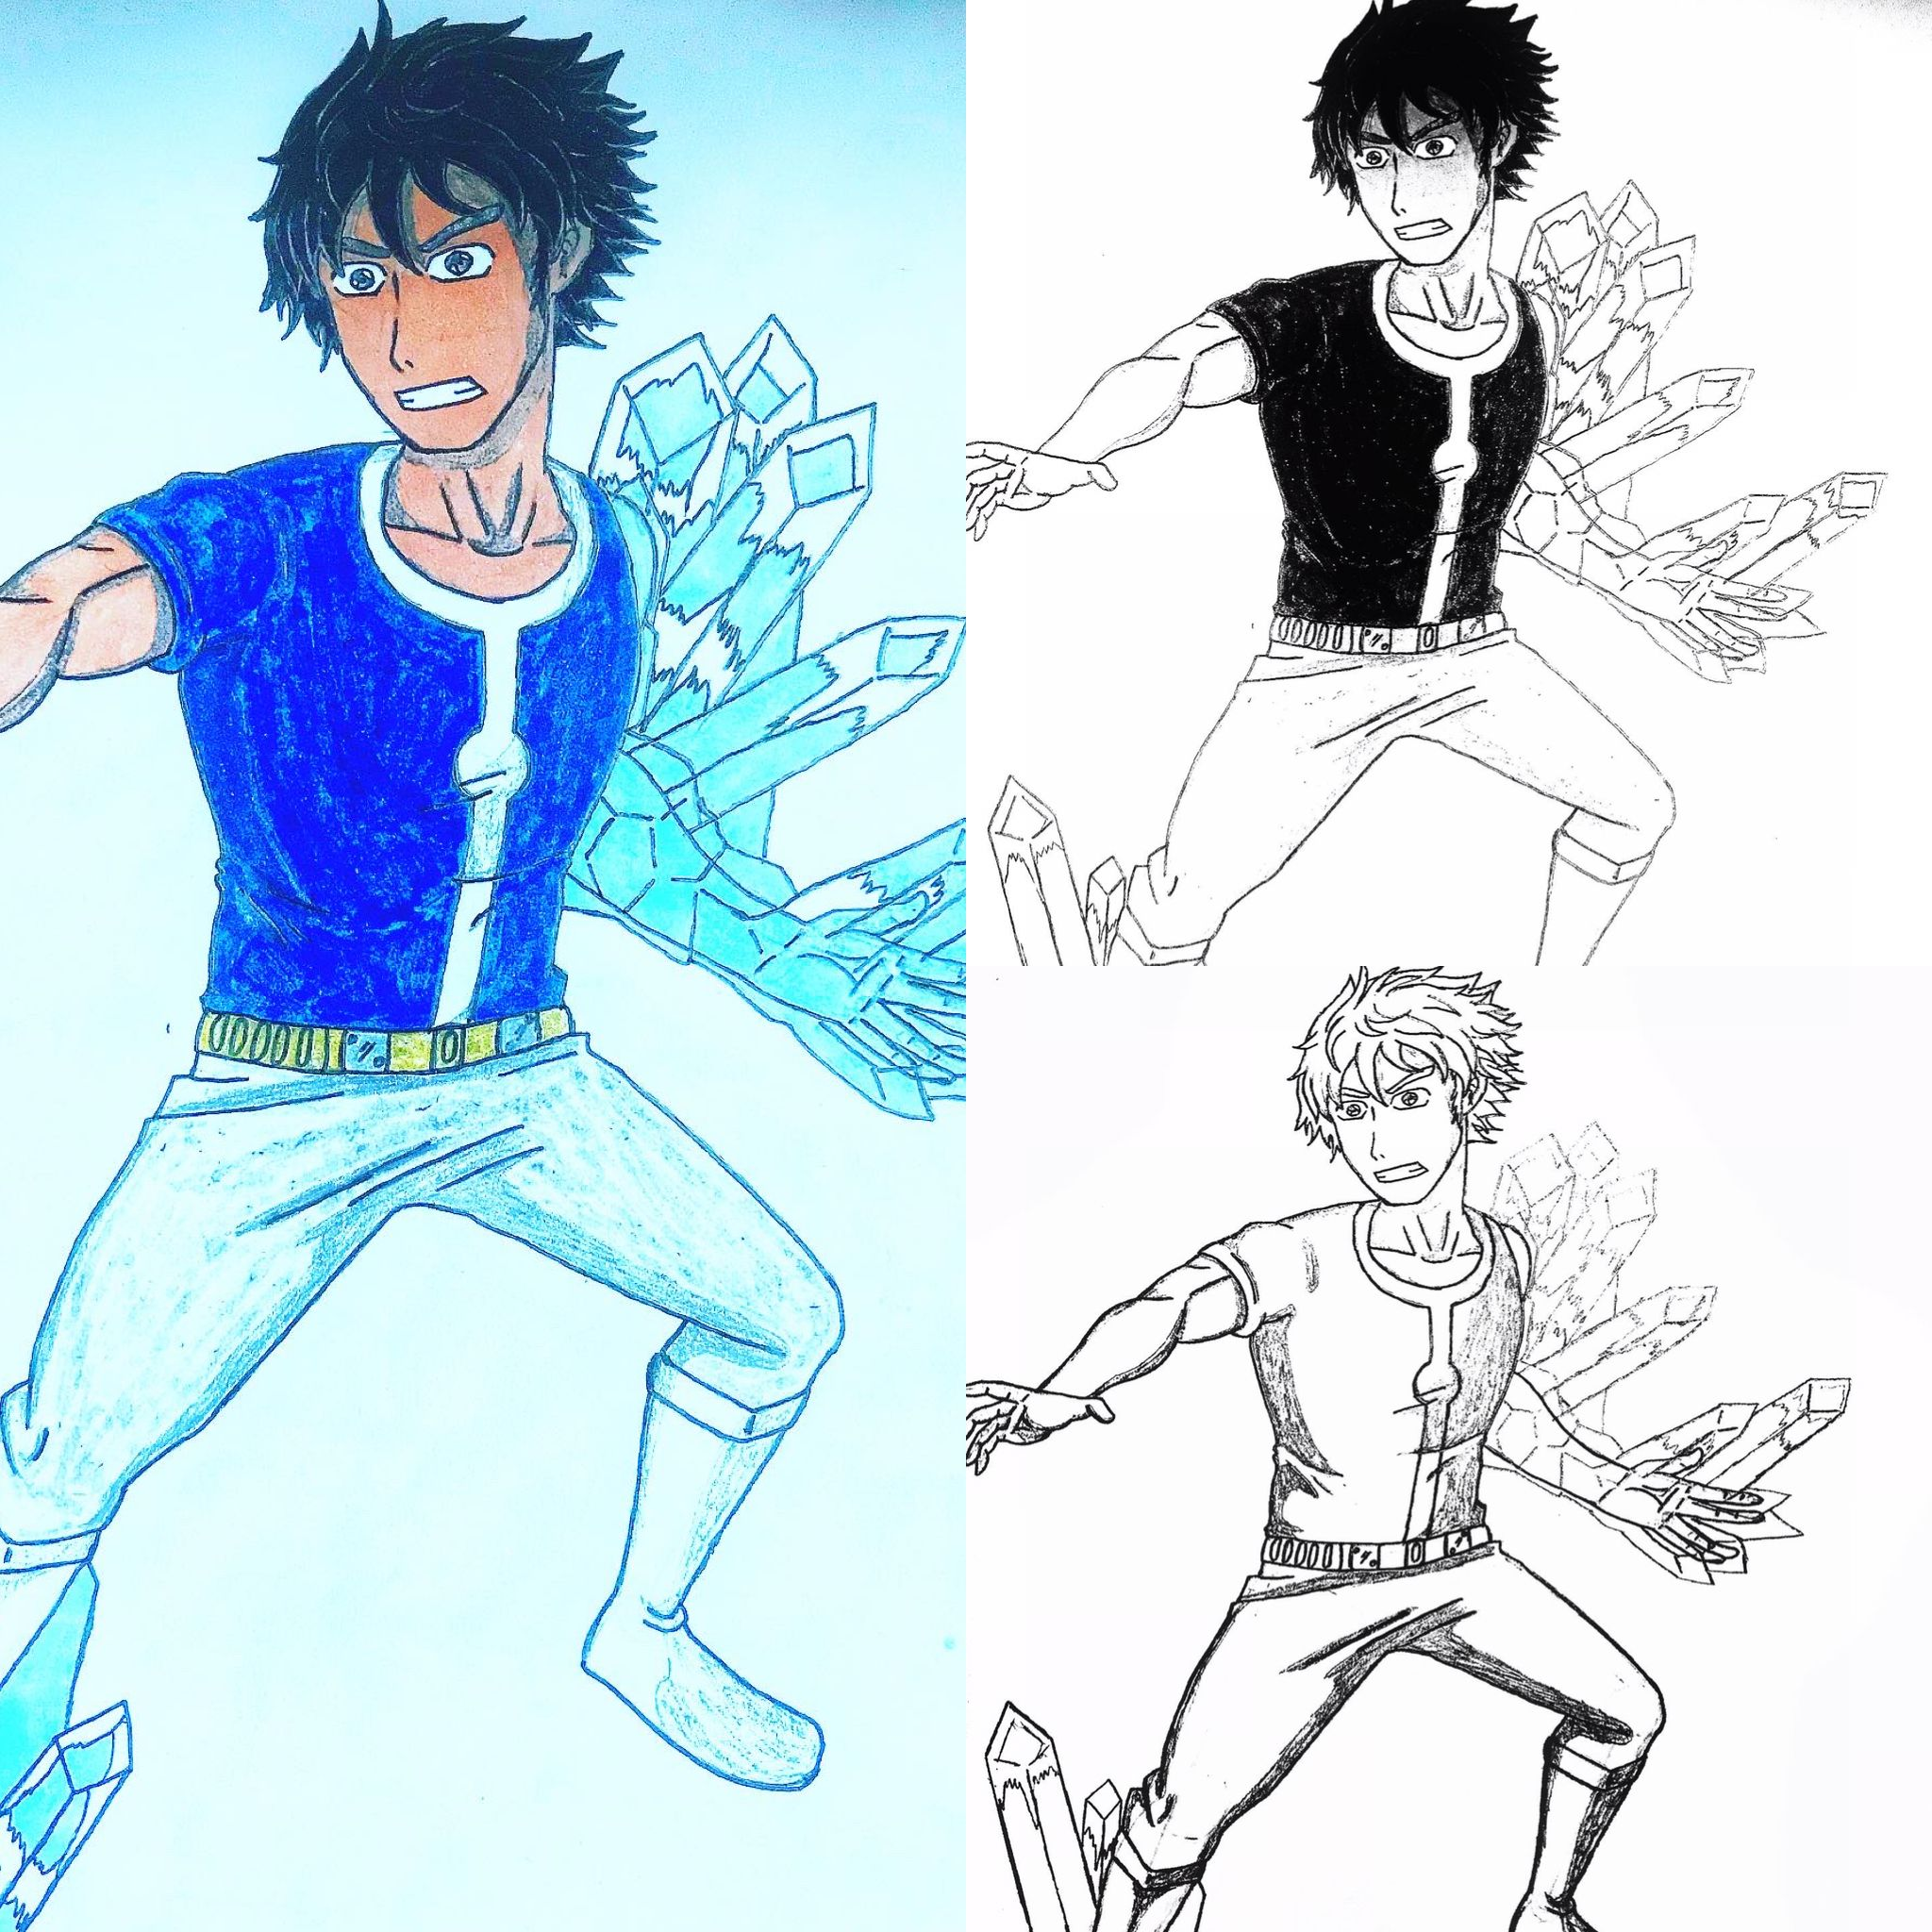 Pin by Jovan's Manga Project on Jovan's Manga Project in